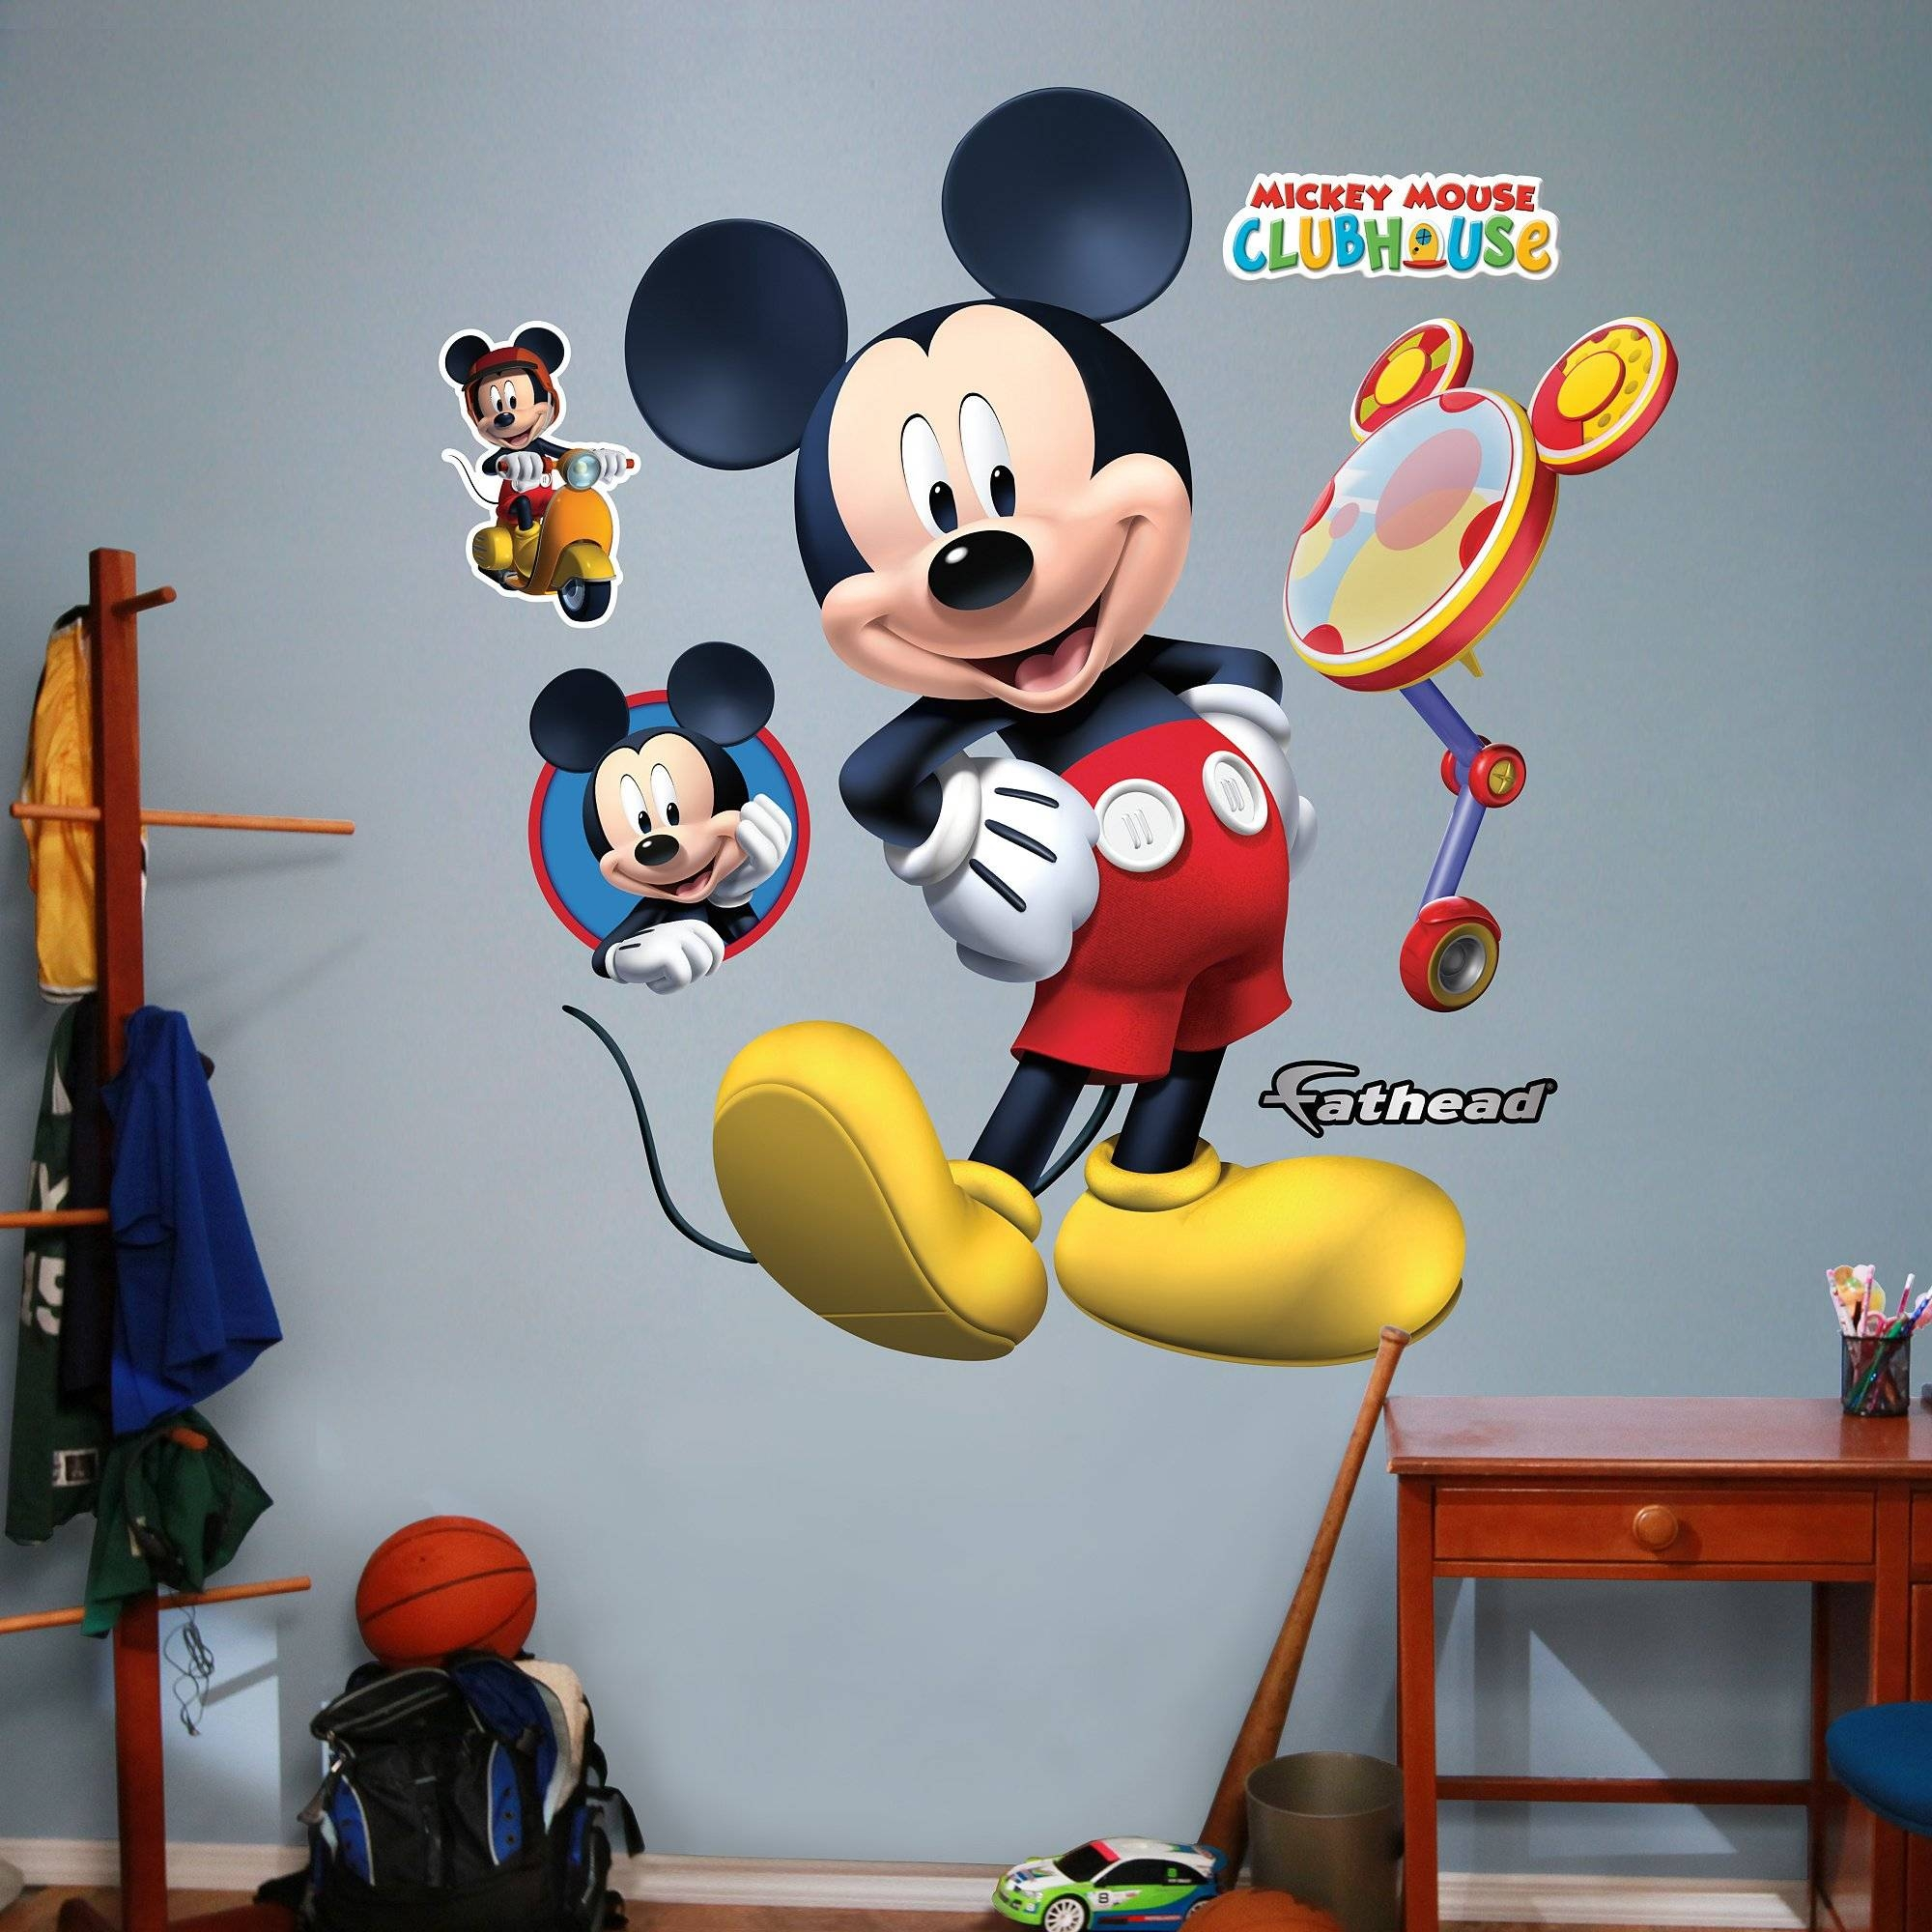 B Art Galleries In Mickey Mouse Clubhouse Wall Decals – Home Decor Regarding Newest Mickey Mouse Clubhouse Wall Art (View 19 of 20)